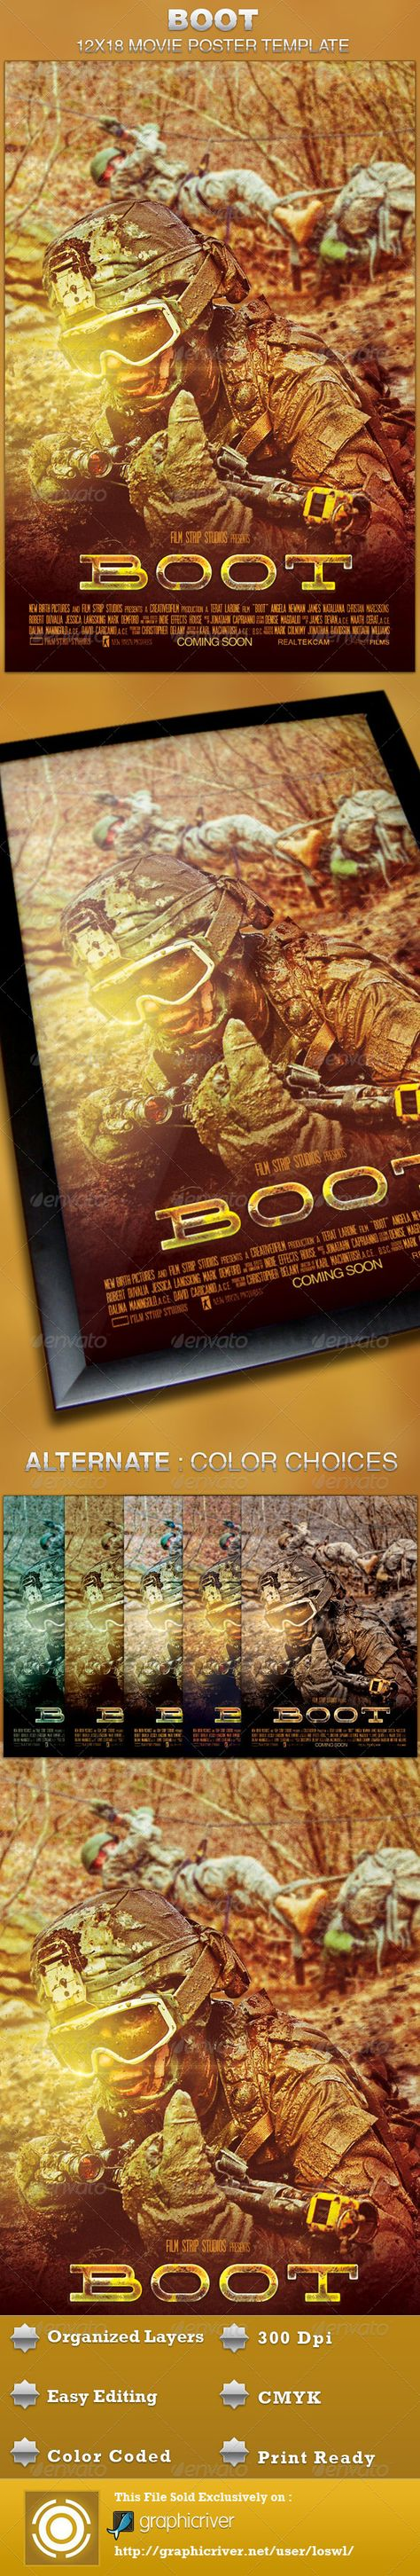 Coming soon movie poster template